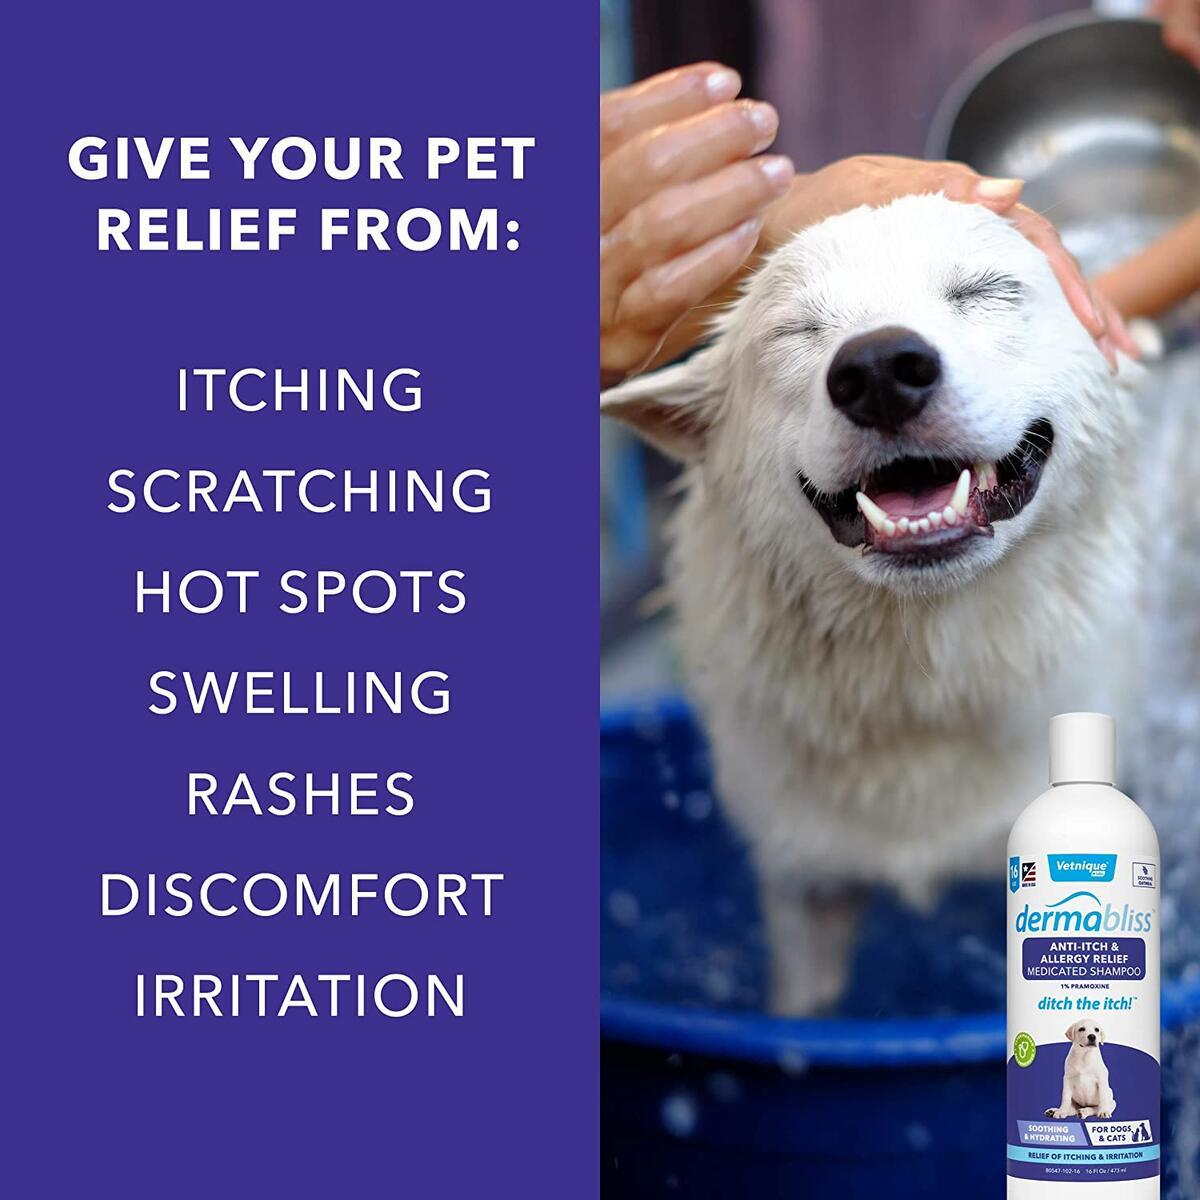 Dermabliss Anti Itch & Allergy Relief Medicated Shampoo for Dogs and Cats